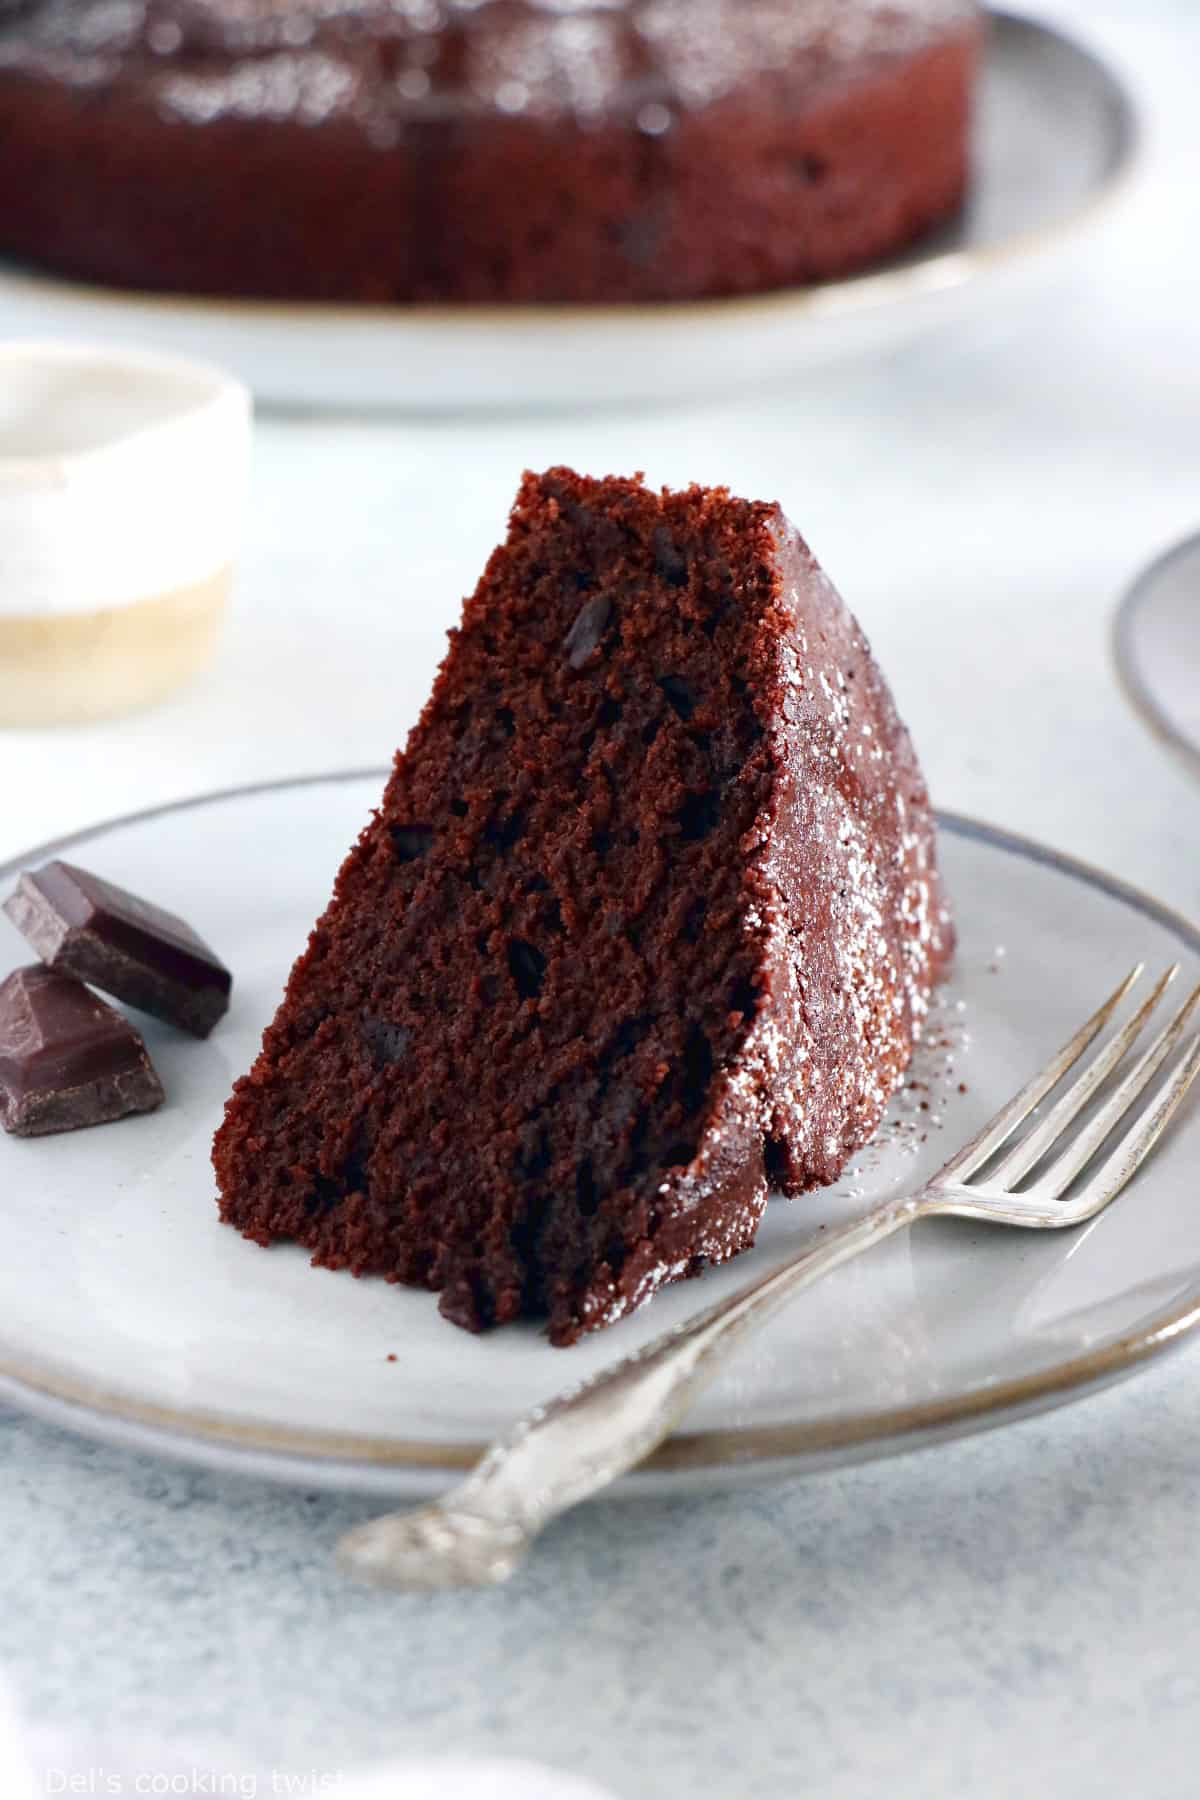 You'll love this Easy Chocolate Olive Oil Yogurt Cake. Directly inspired from the classic French Yogurt Cake, this no-fail recipe is moist, tender, and deliciously chocolaty.